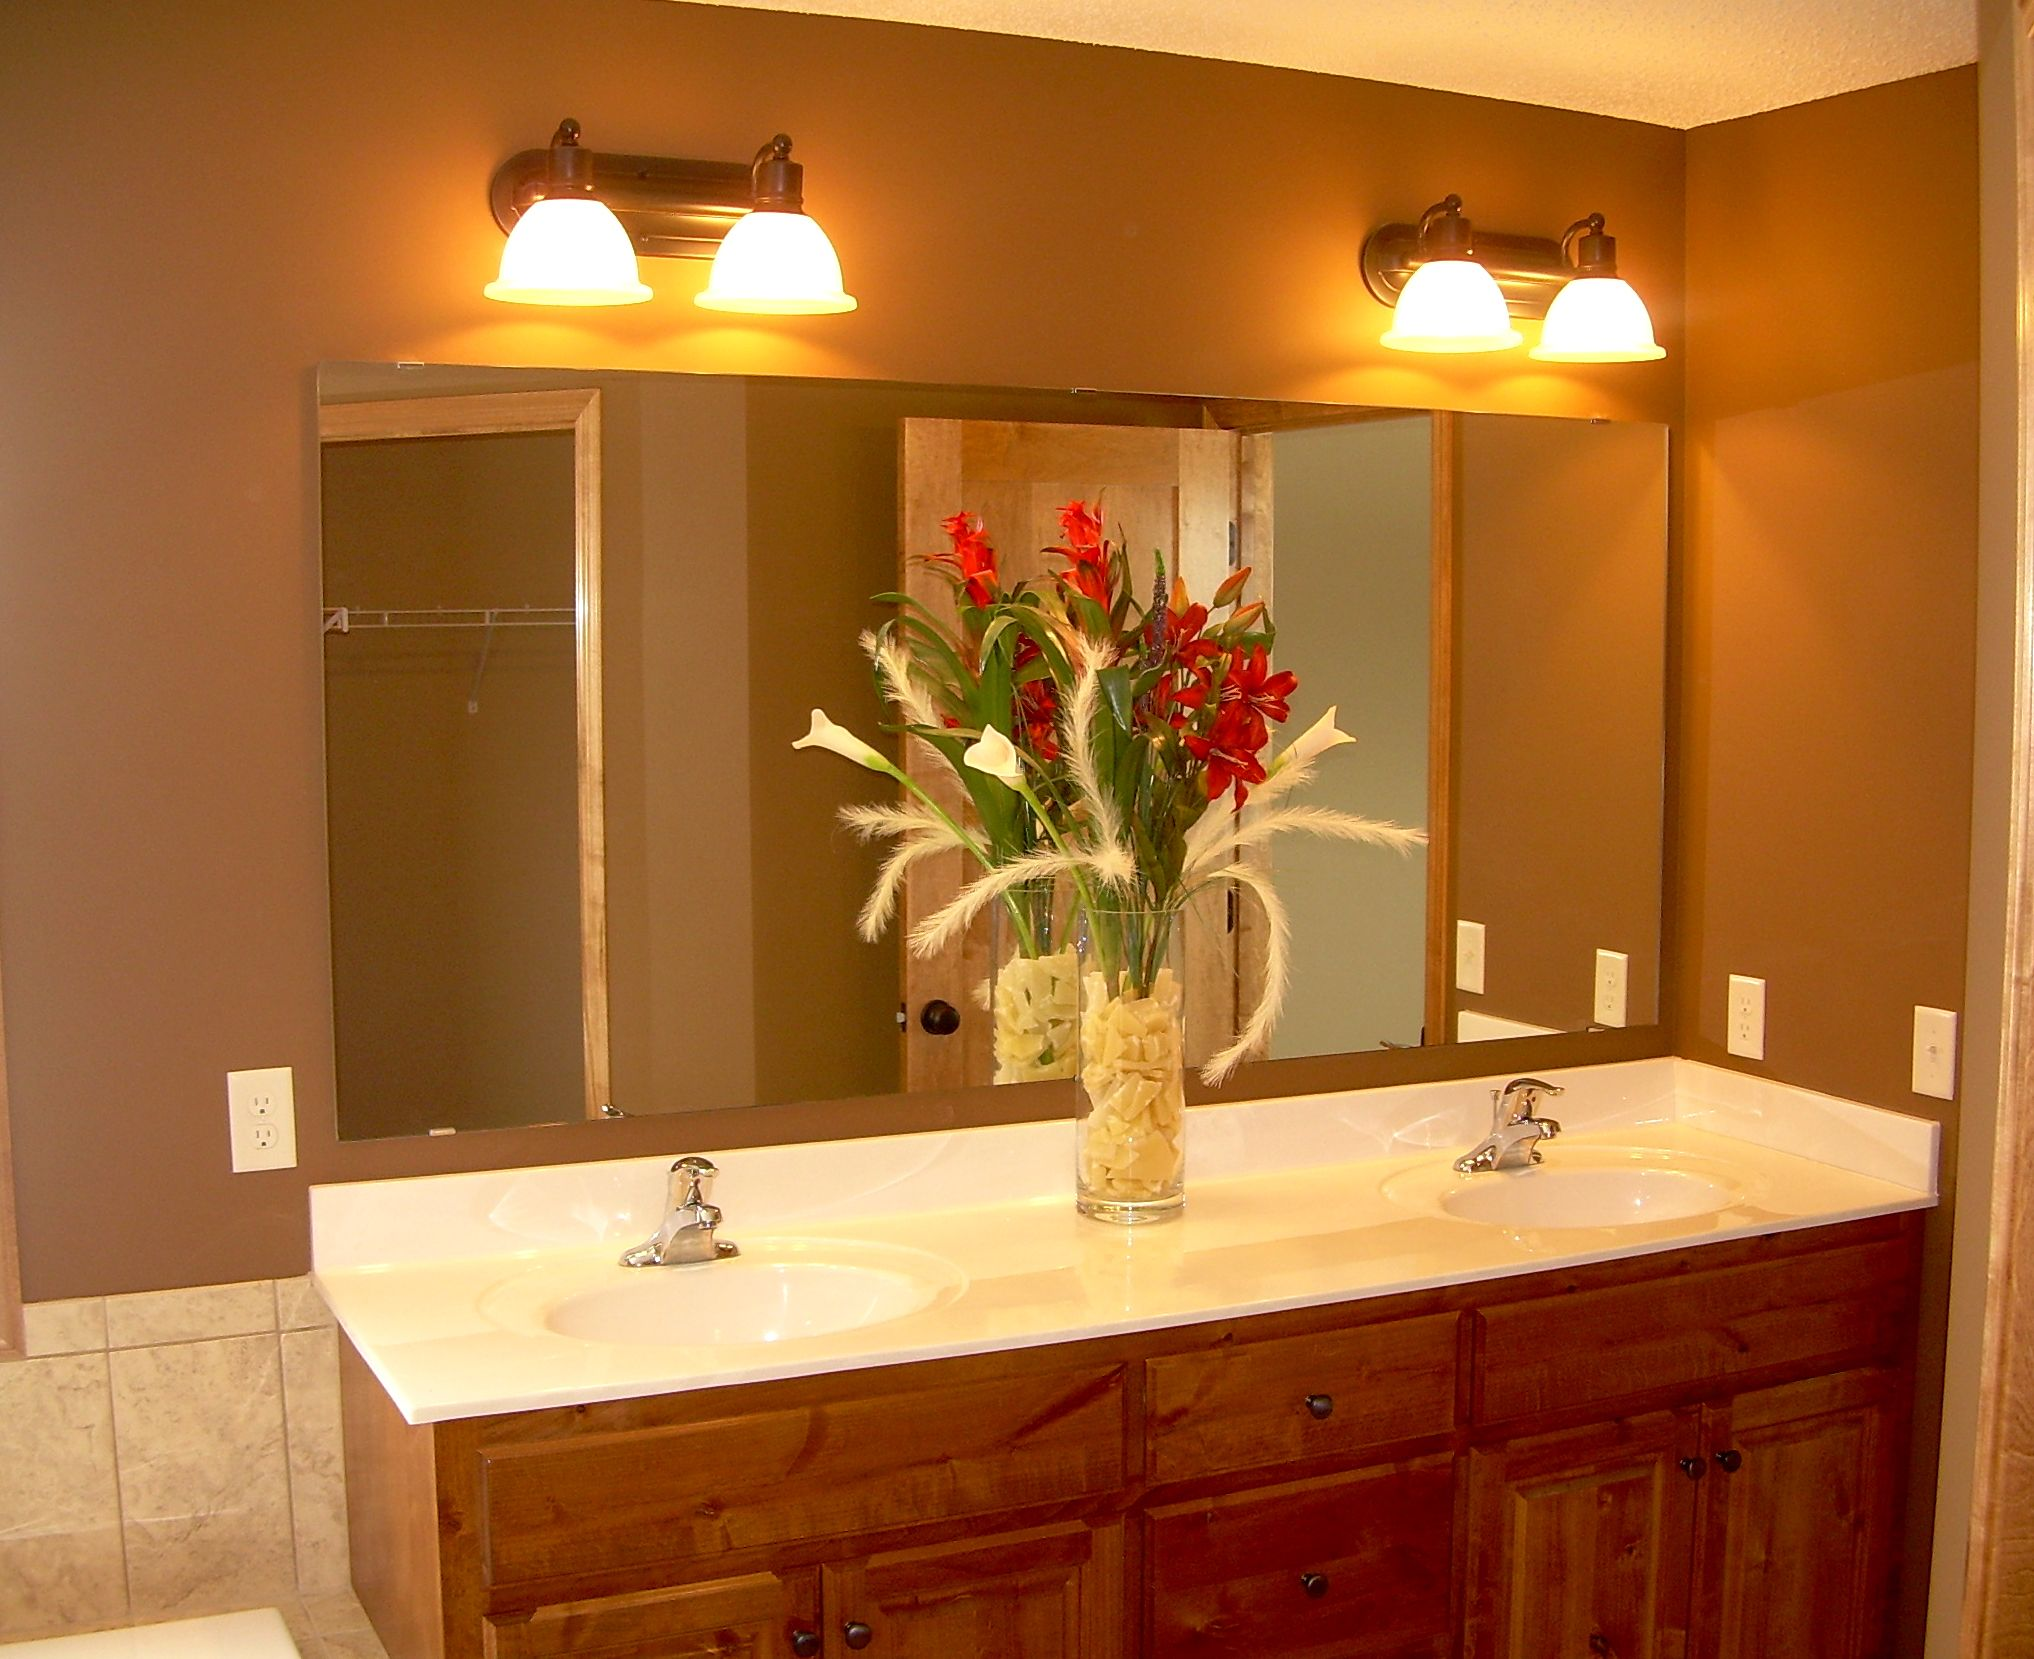 Bathroom Mirror : Bathroom Wall Mirrors Without Frame Bathroom Mirrors With  Wood Frame And Lights